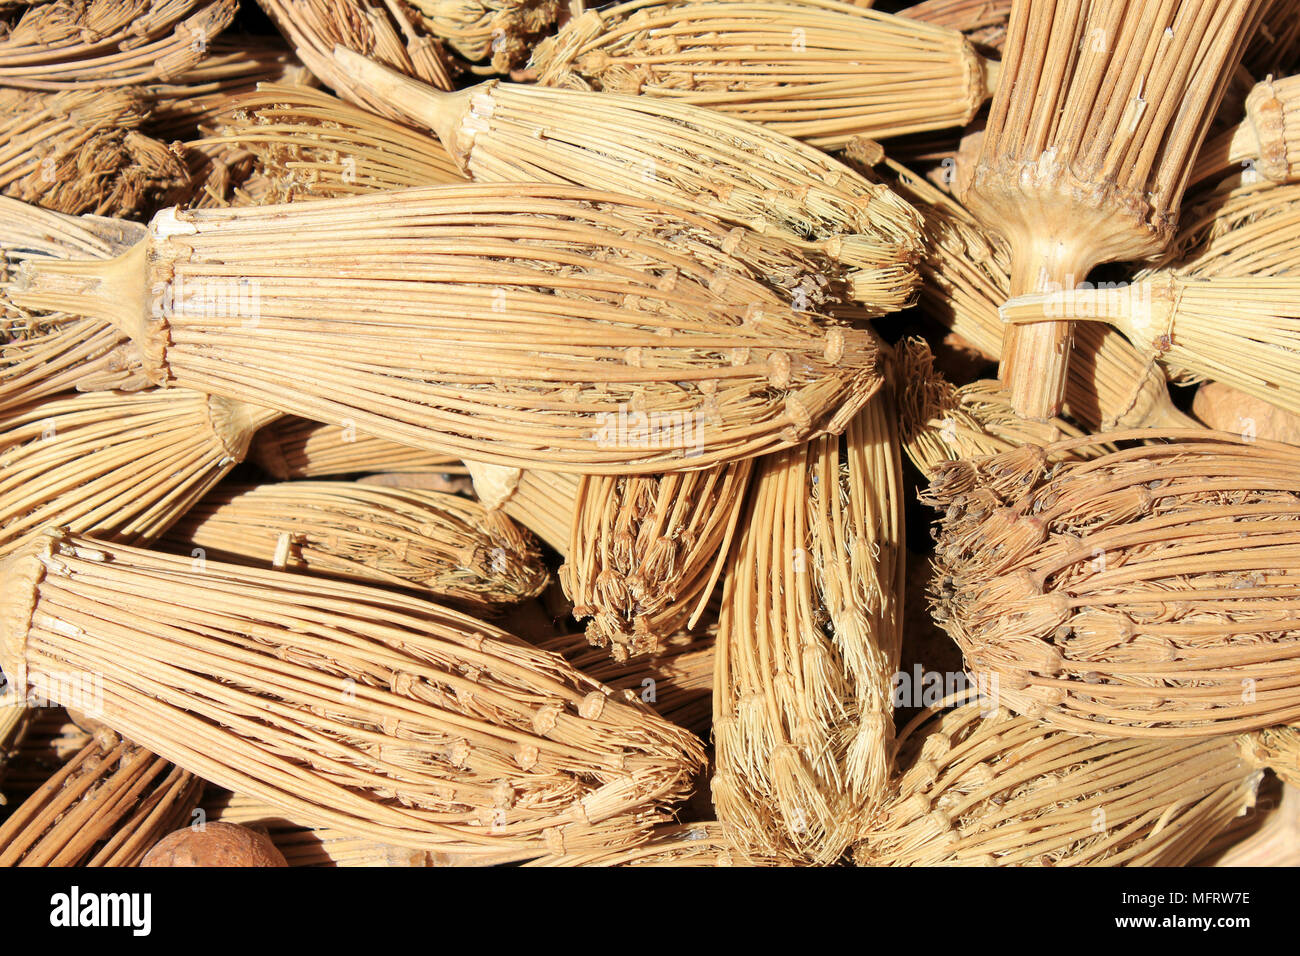 'Cure-dents' - Berber Toothpicks - the dried heads of Toothpickweed(Ammi visnaga) - Stock Image